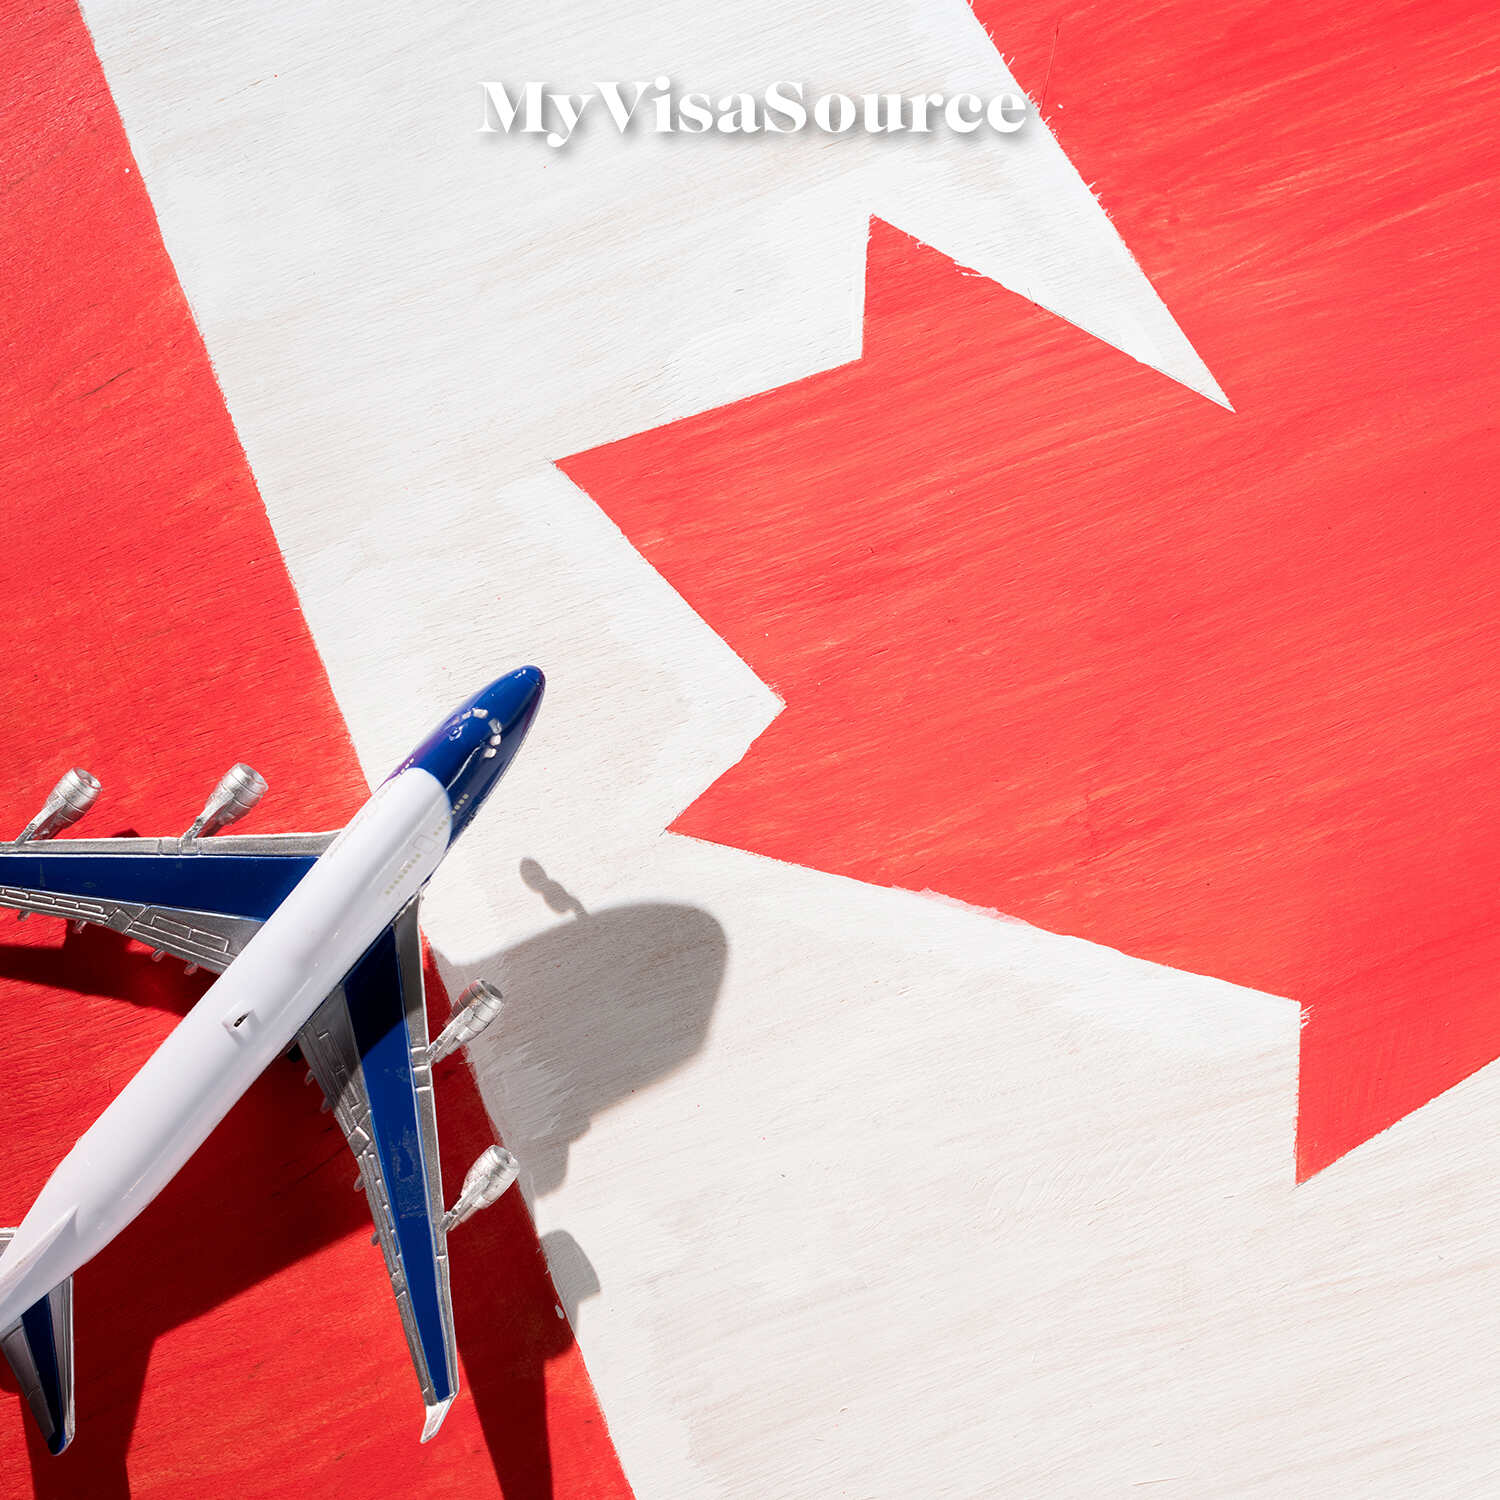 airplane-over-canadian-flag-my-visa-source